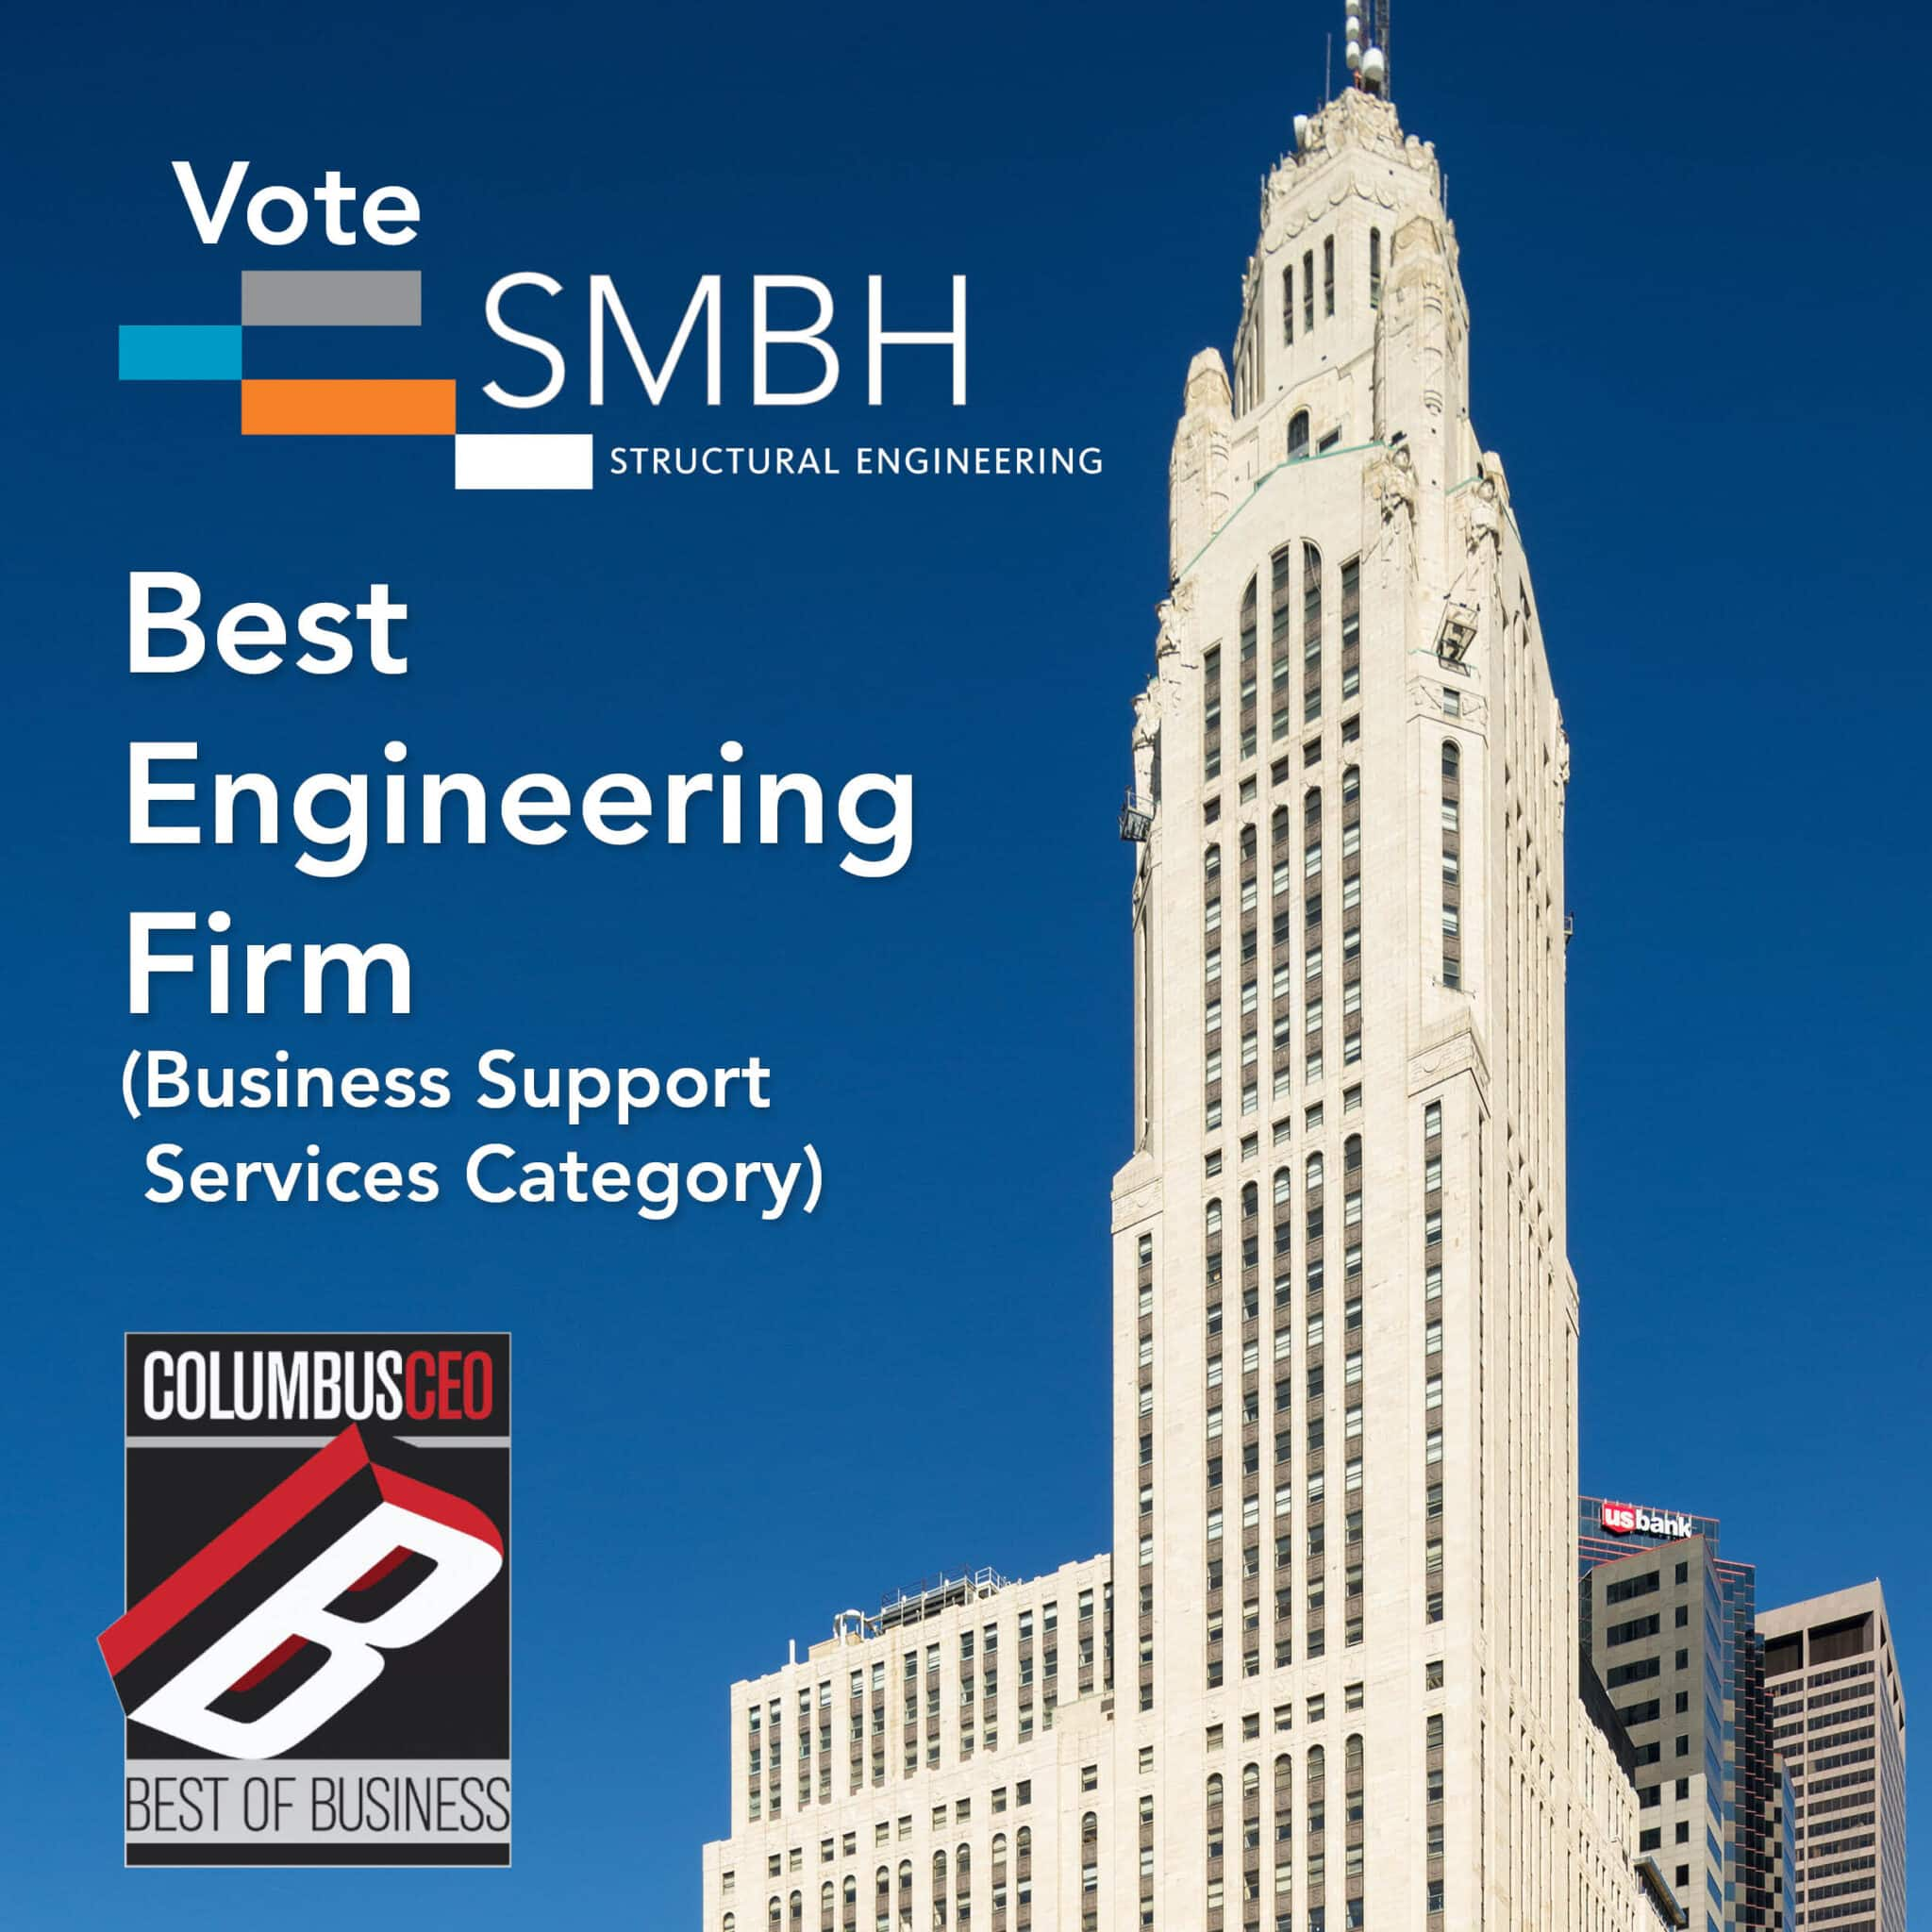 """Photo of LeVeque Tower in Downtown Columbus, with copy stating """"Vote SMBH Best Engineering Firm (Business Support Services Category)!"""